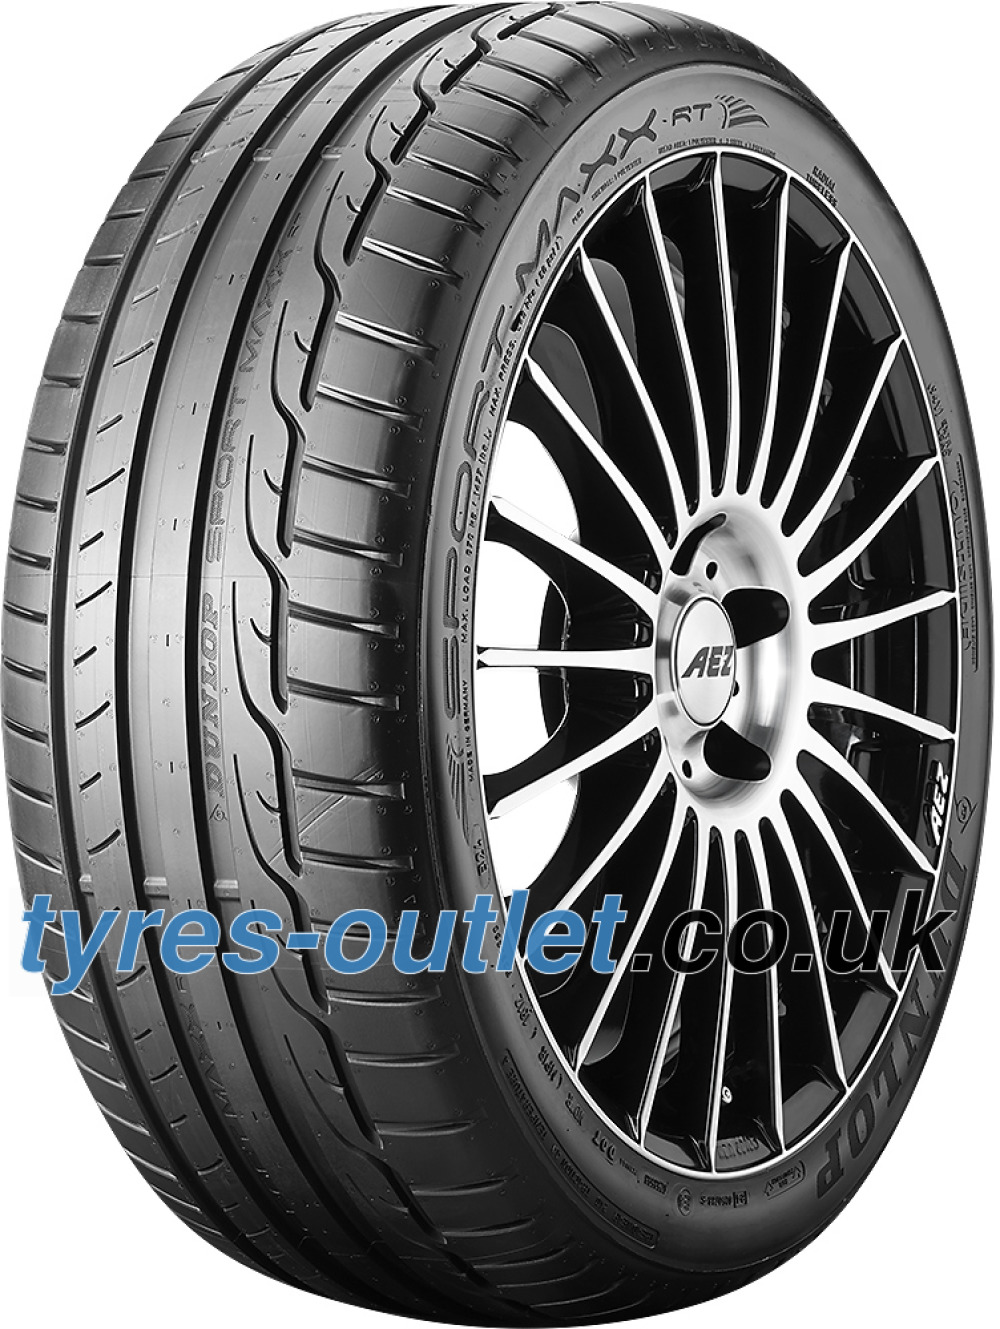 Dunlop Sport Maxx RT ( 215/55 R16 93Y with rim protection (MFS) )